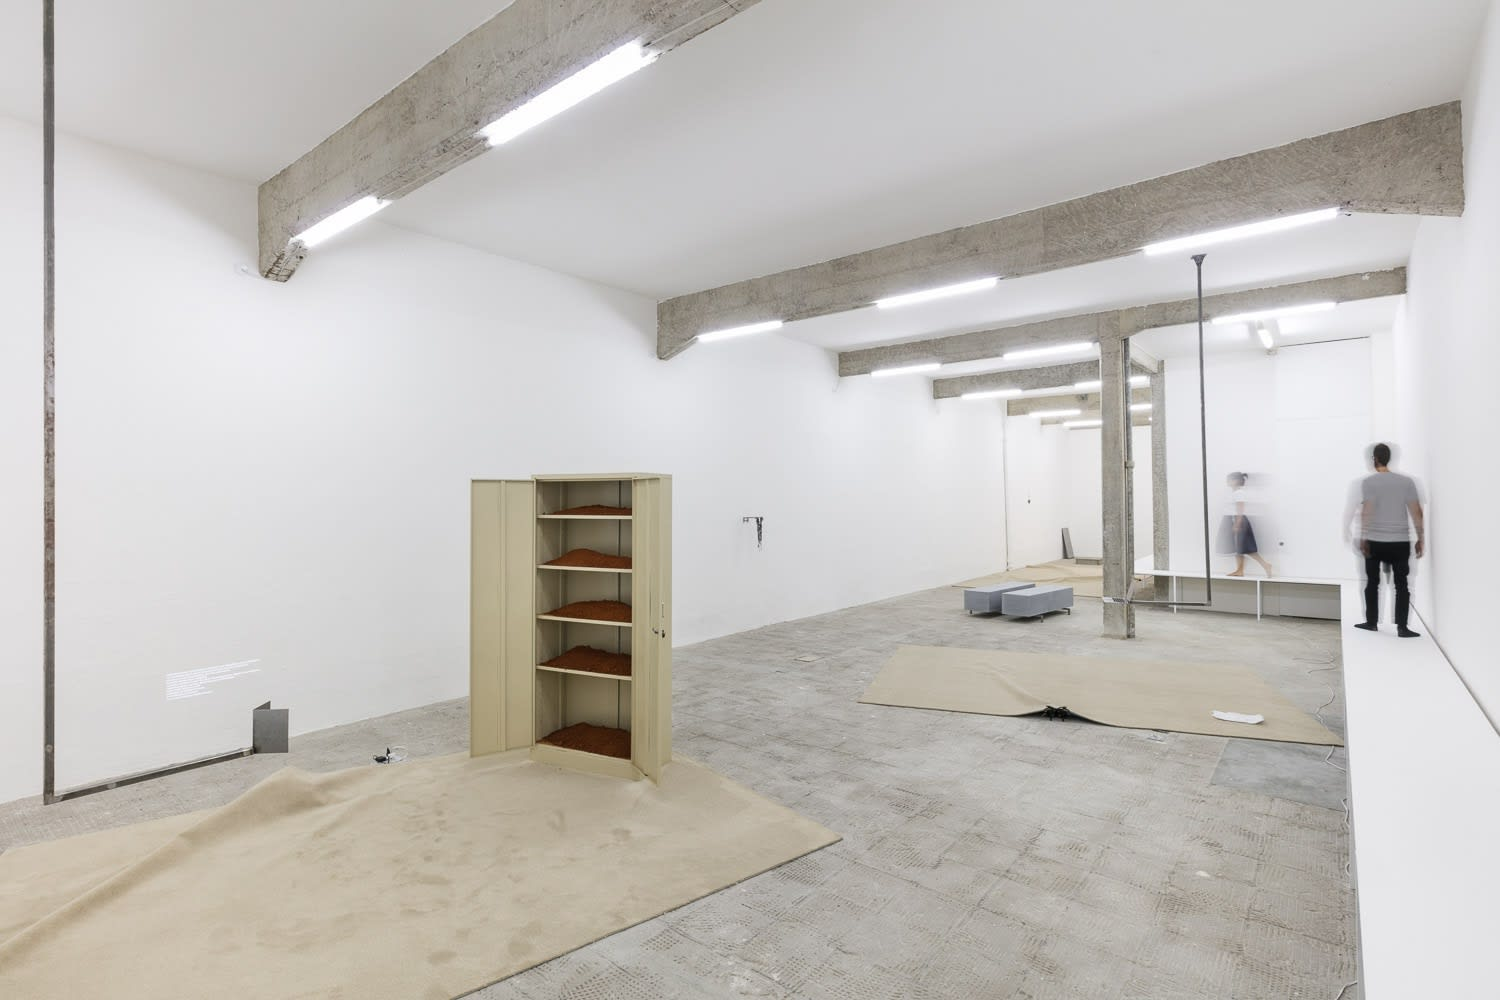 The gallerist, the letter and the garden, exhibition view at Galeria Jaqueline Martins, 2019